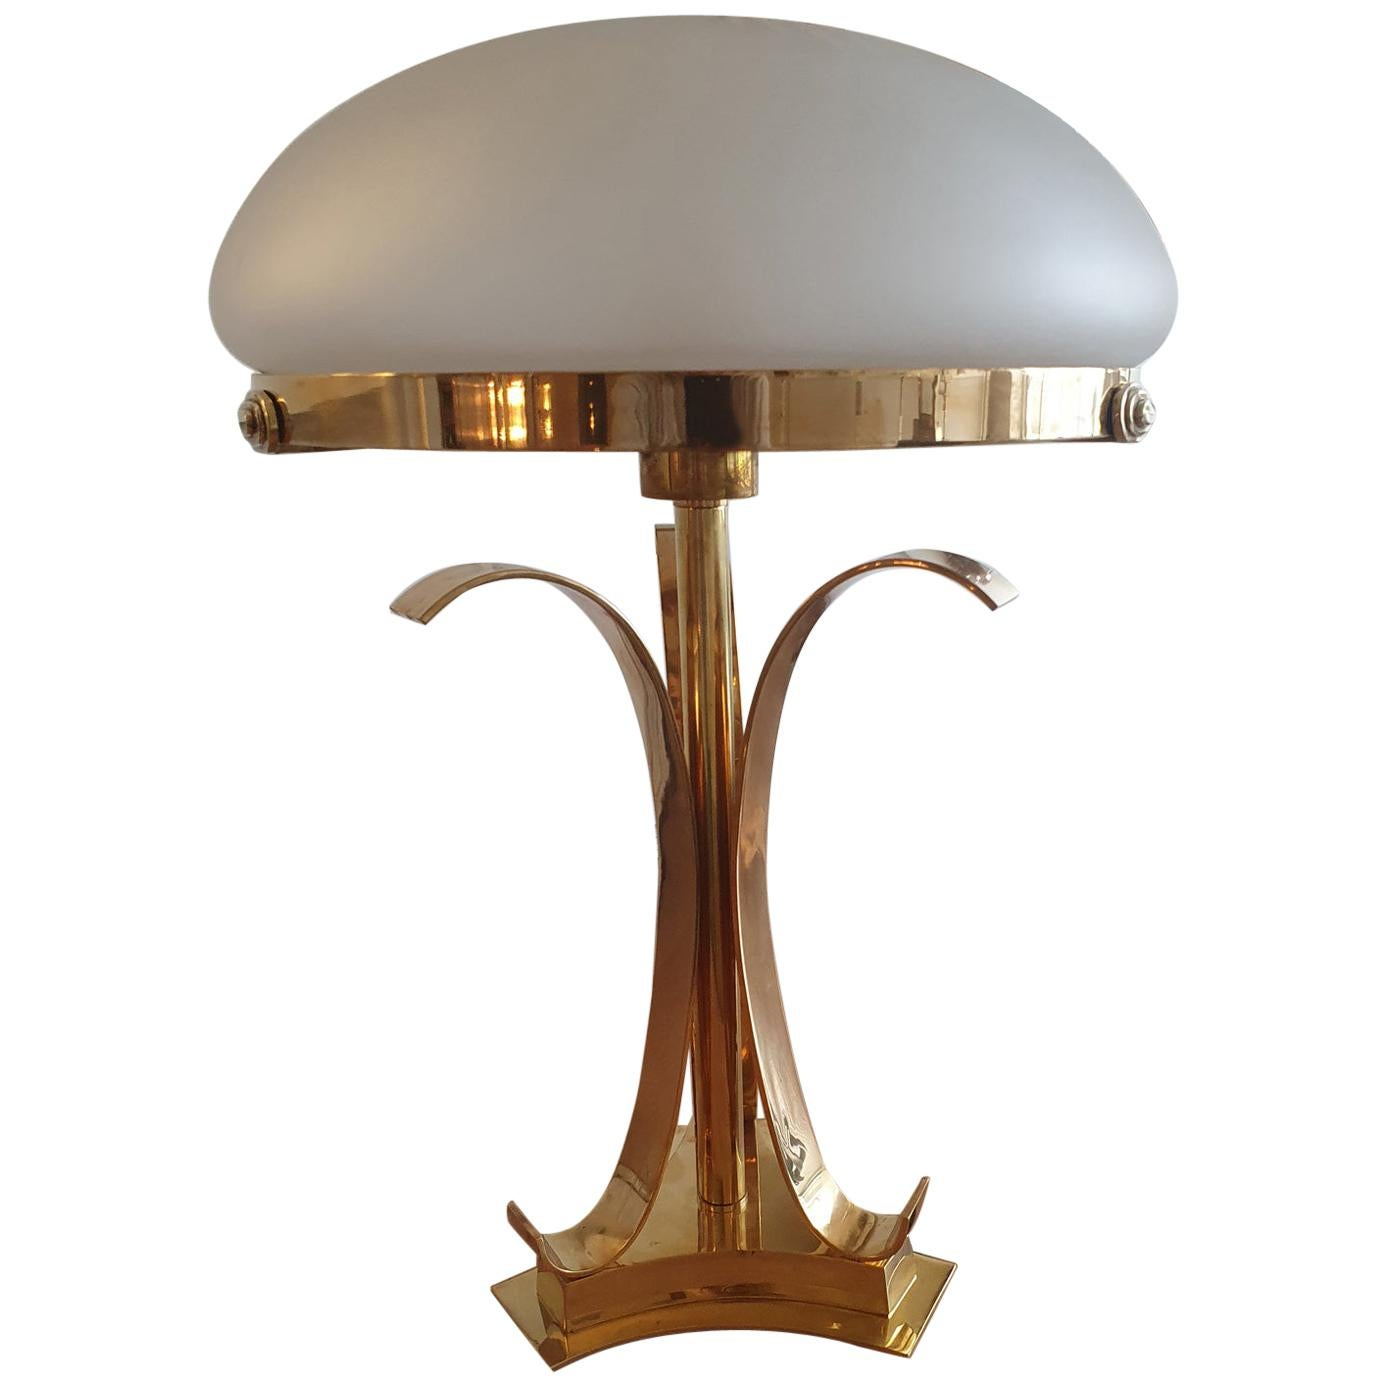 Art Deco Lamp and Vintage Glass